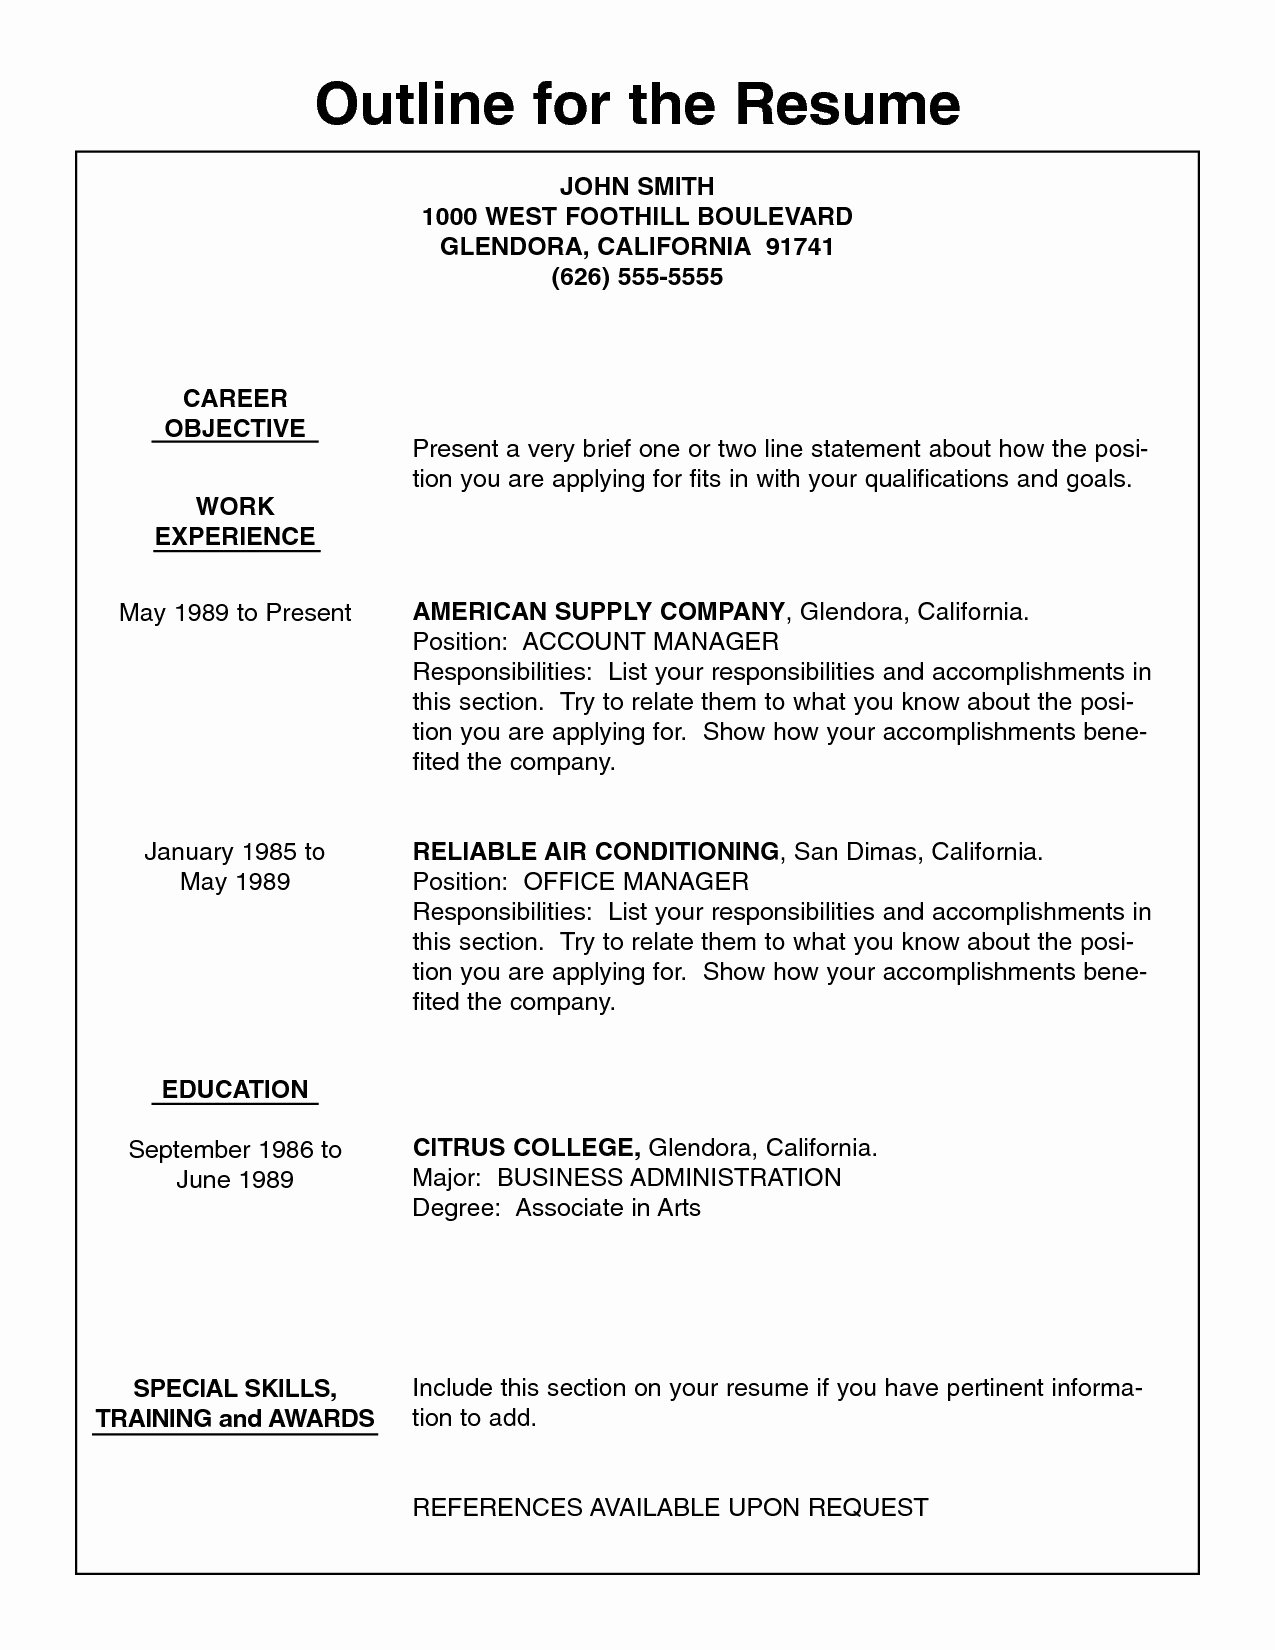 Job Resumes Outline Resume Example Resume Outline